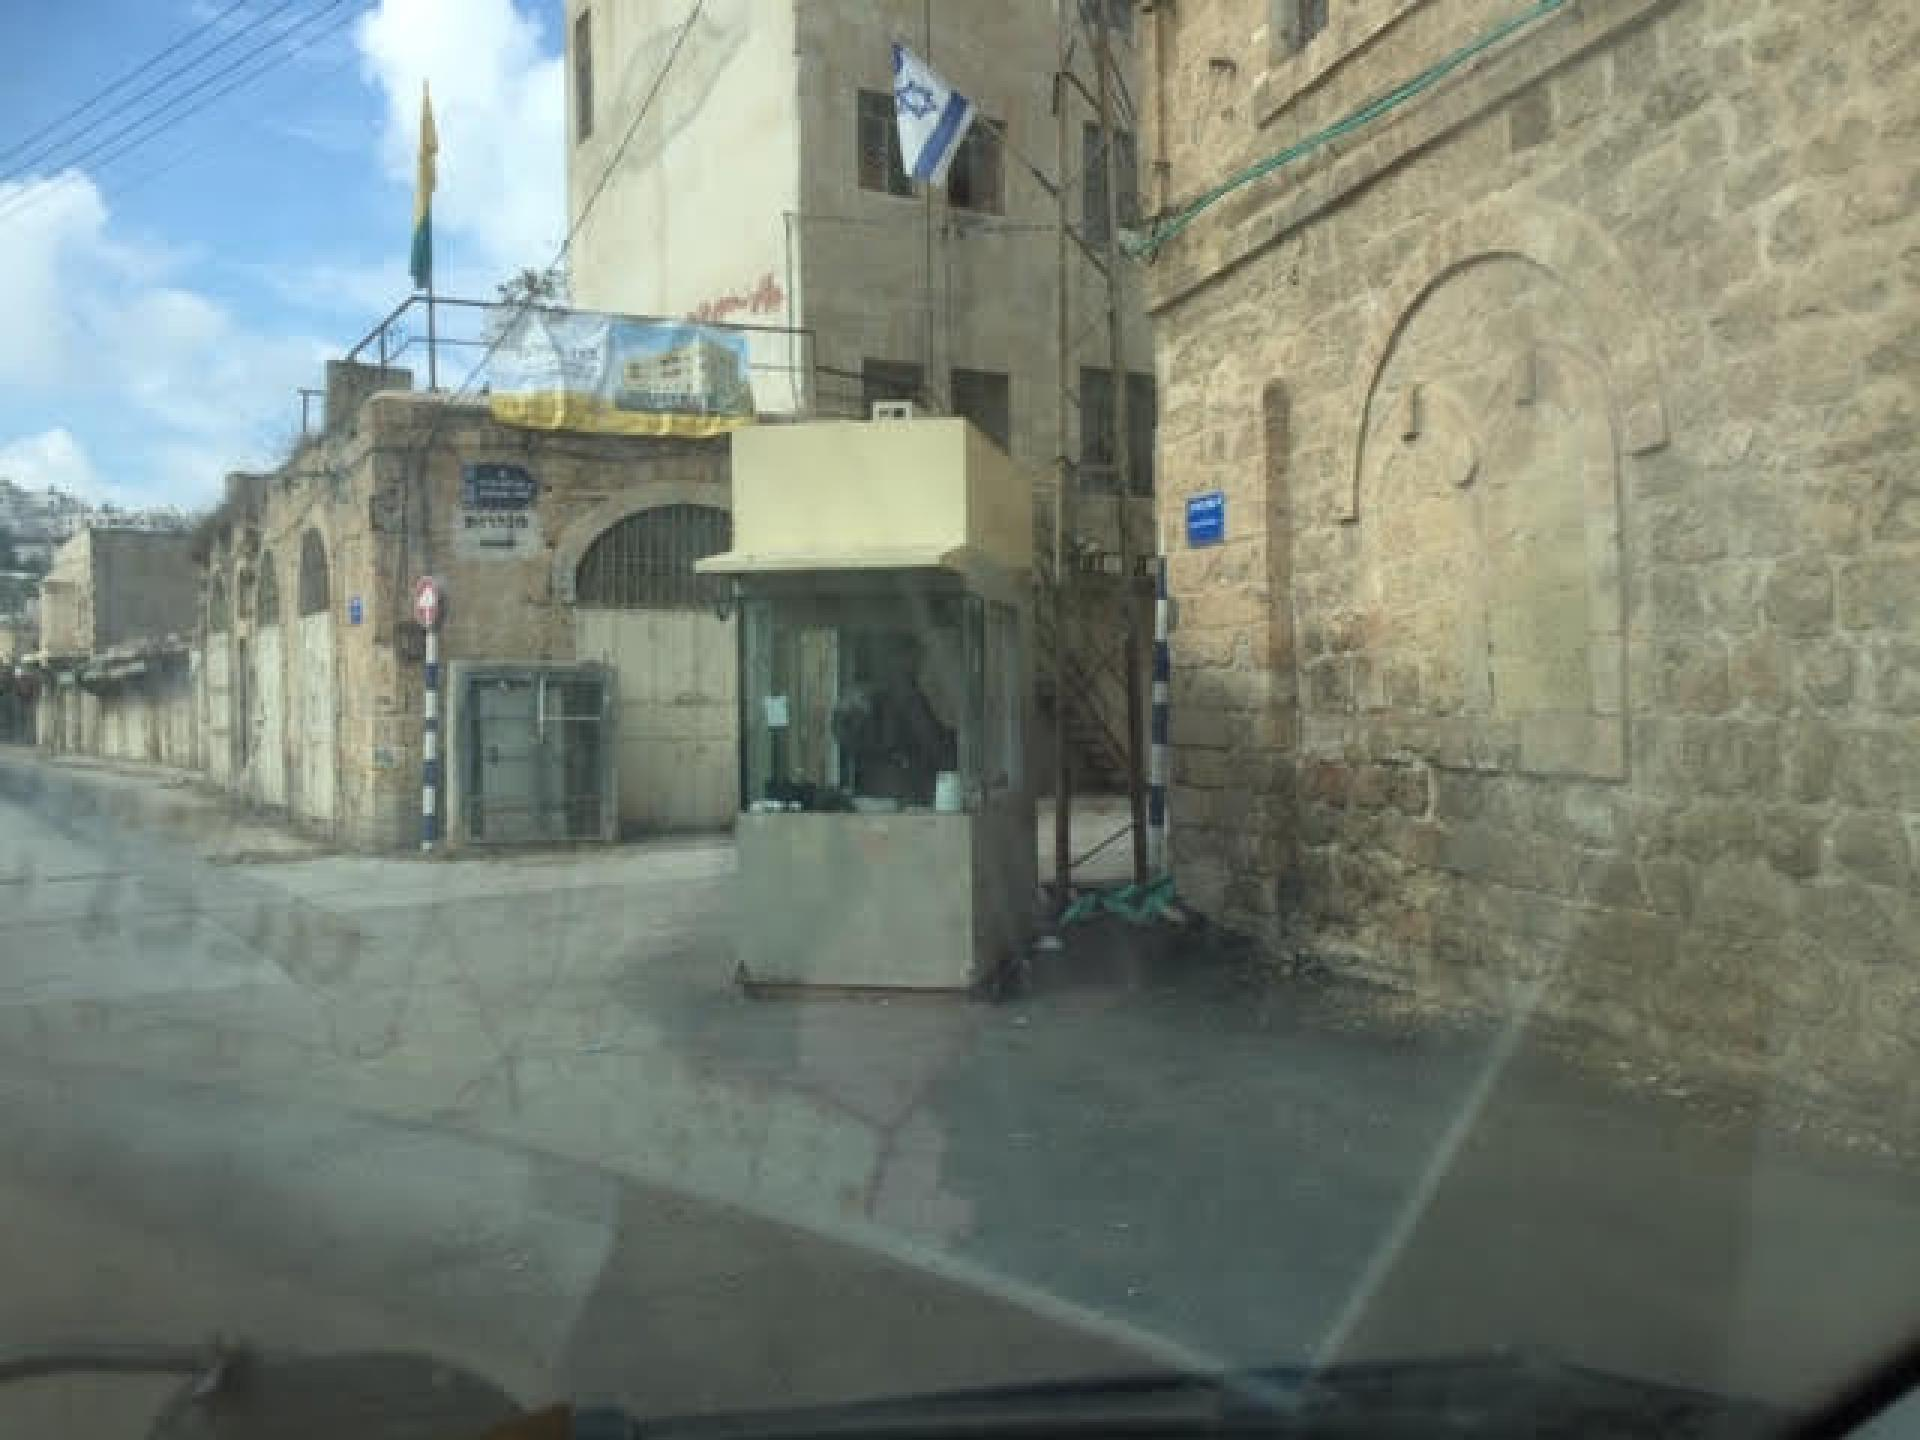 The checkpoint at the entrance to Abraham Our Father neighborhood